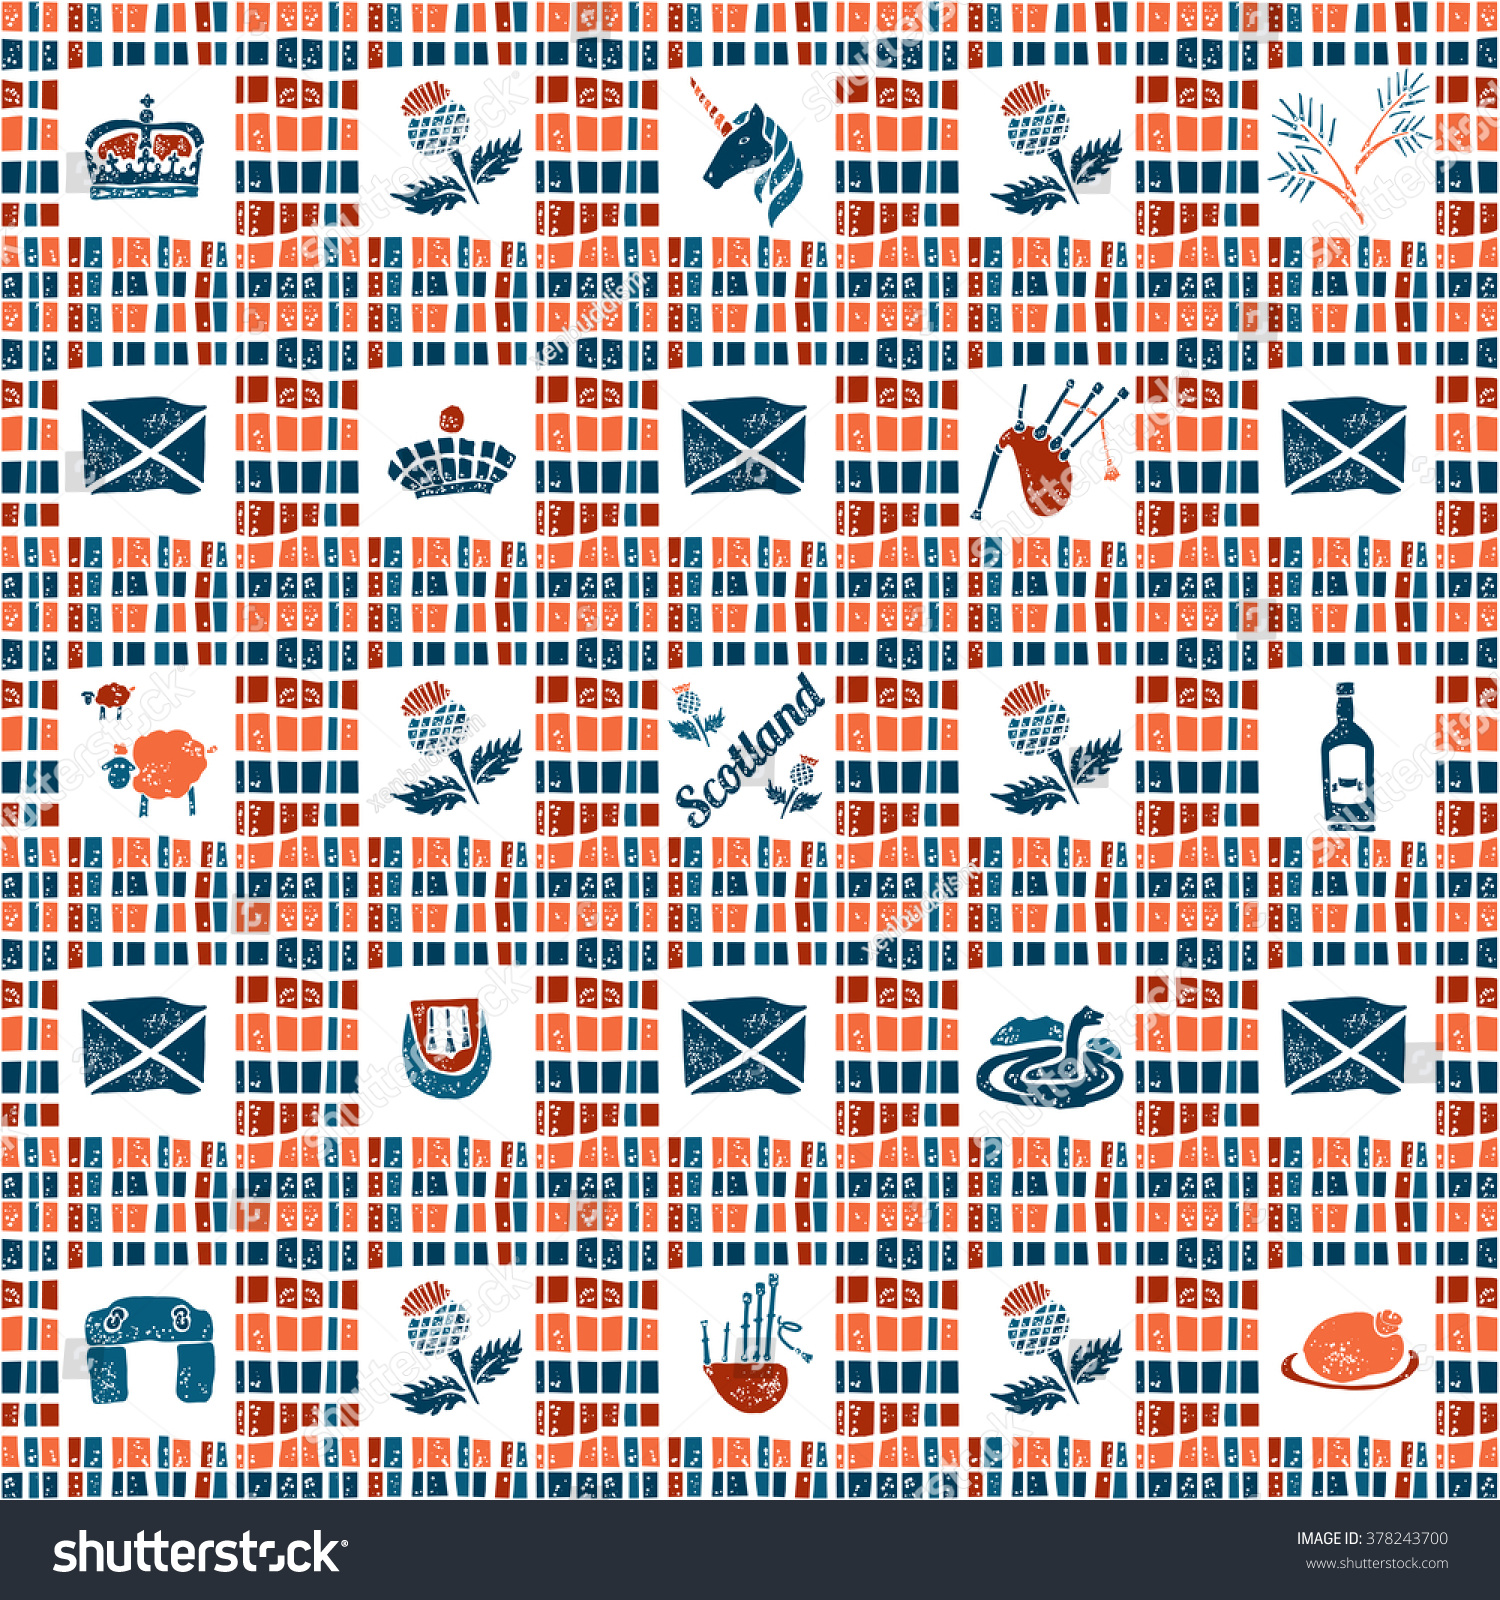 Plaid fabric vector seamless pattern symbols stock vector 378243700 plaid fabric vector seamless pattern symbols of scotland buycottarizona Image collections